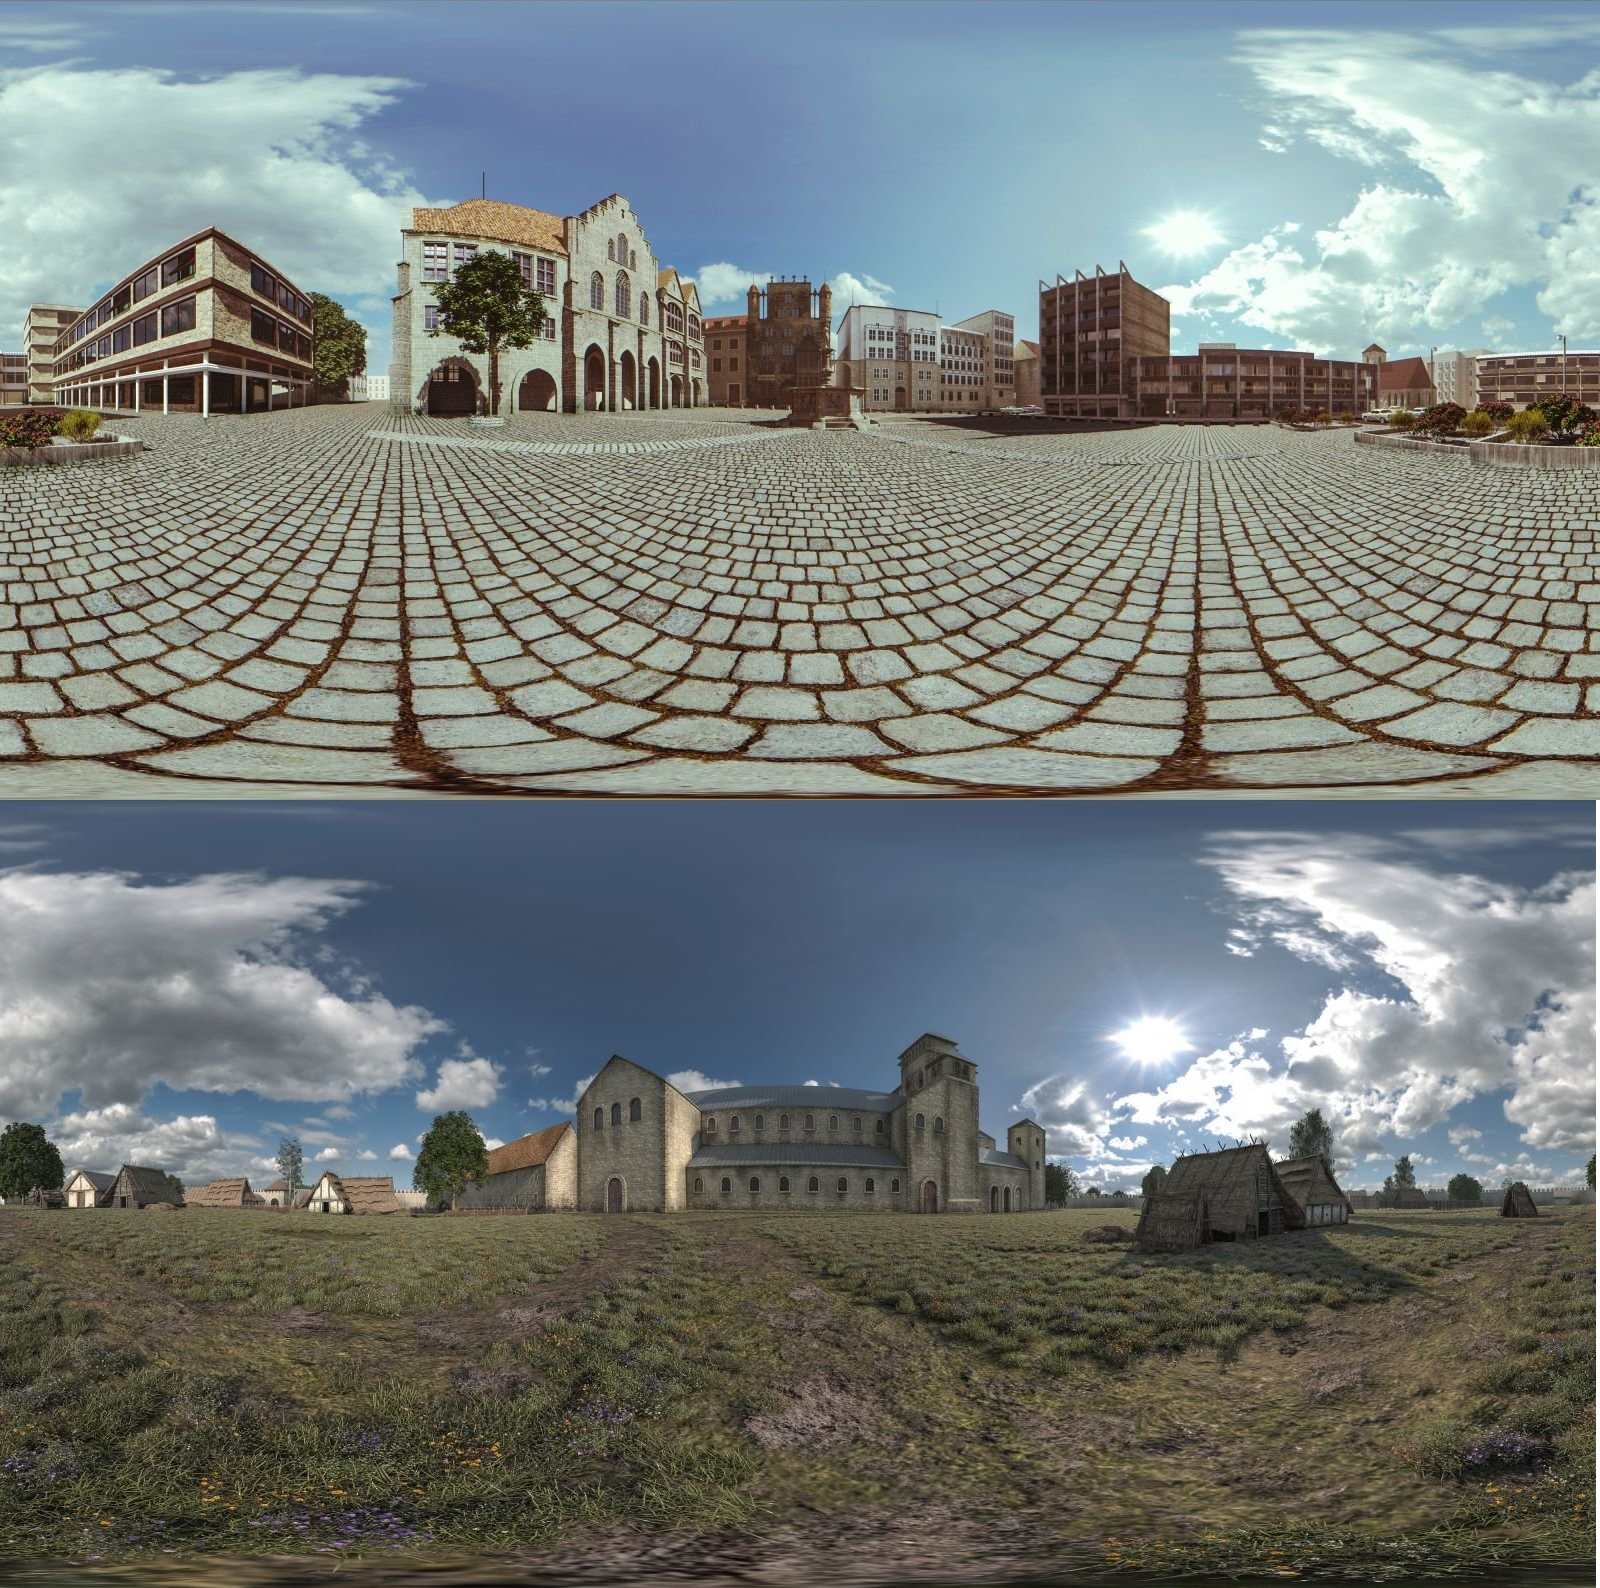 CG-panoramas-one-of-the-types-of-architectural-visualization-services